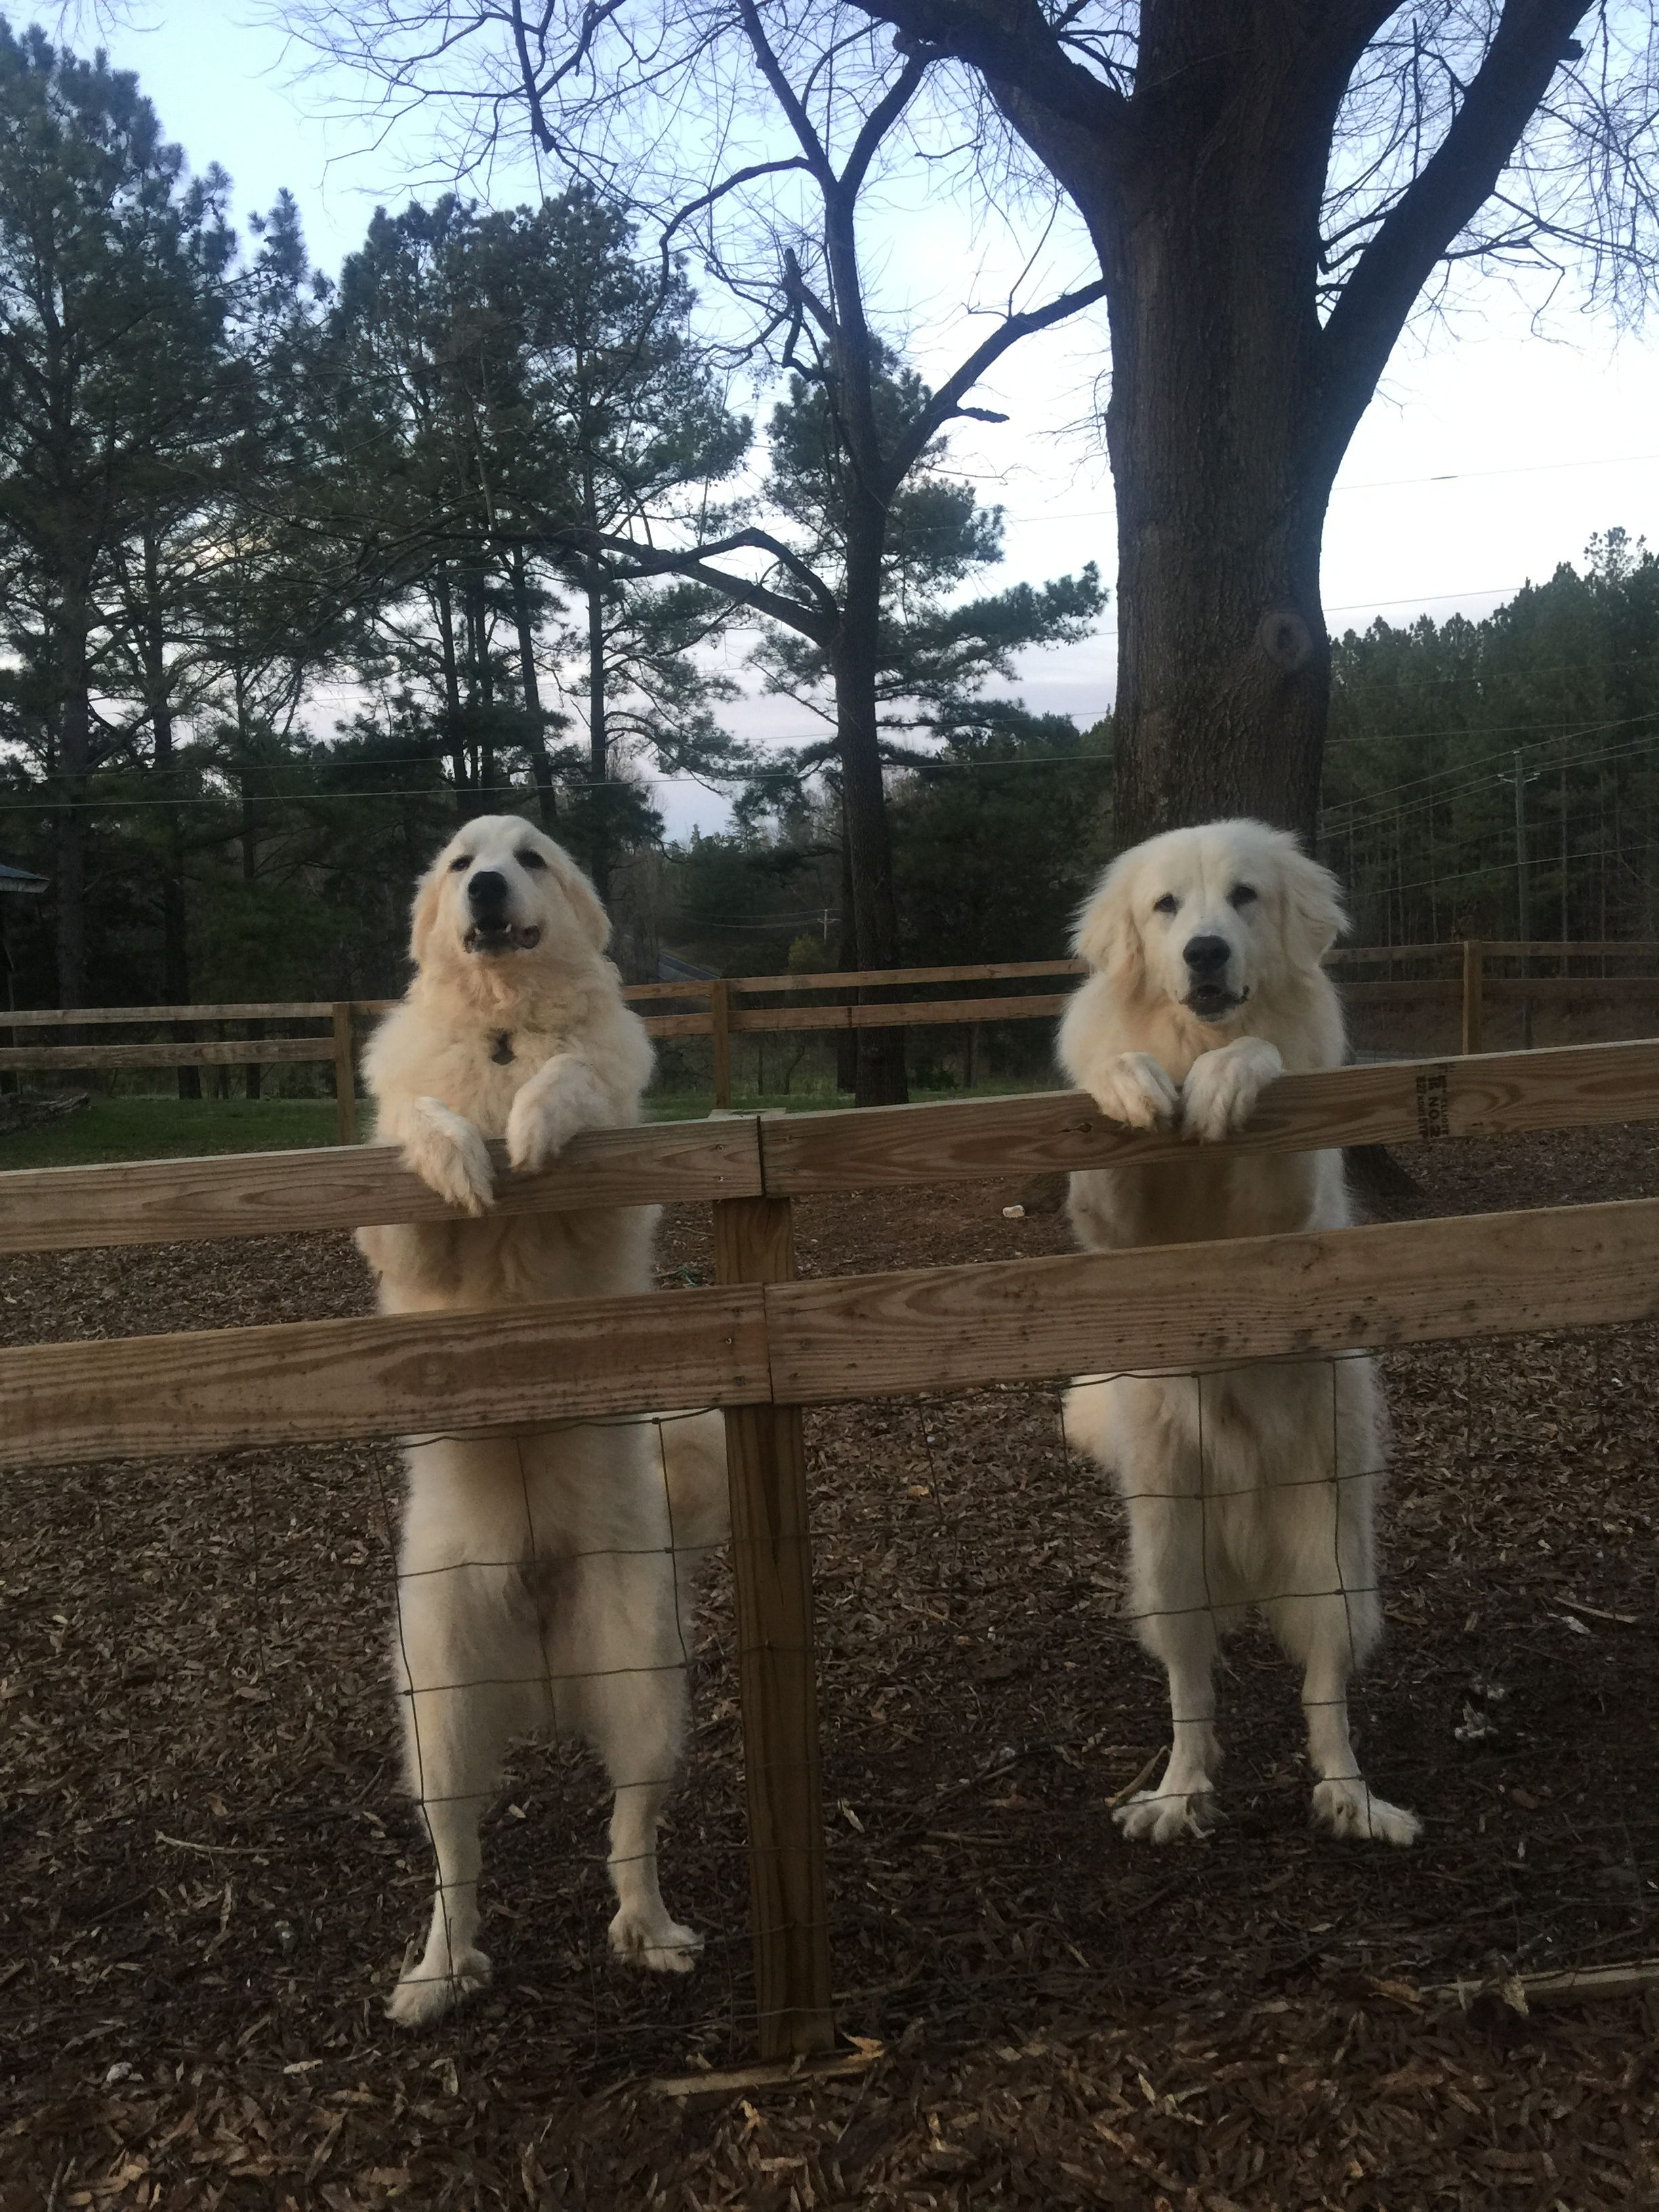 ️ Pyrenees Great pyrenees dog, Livestock guardian dog